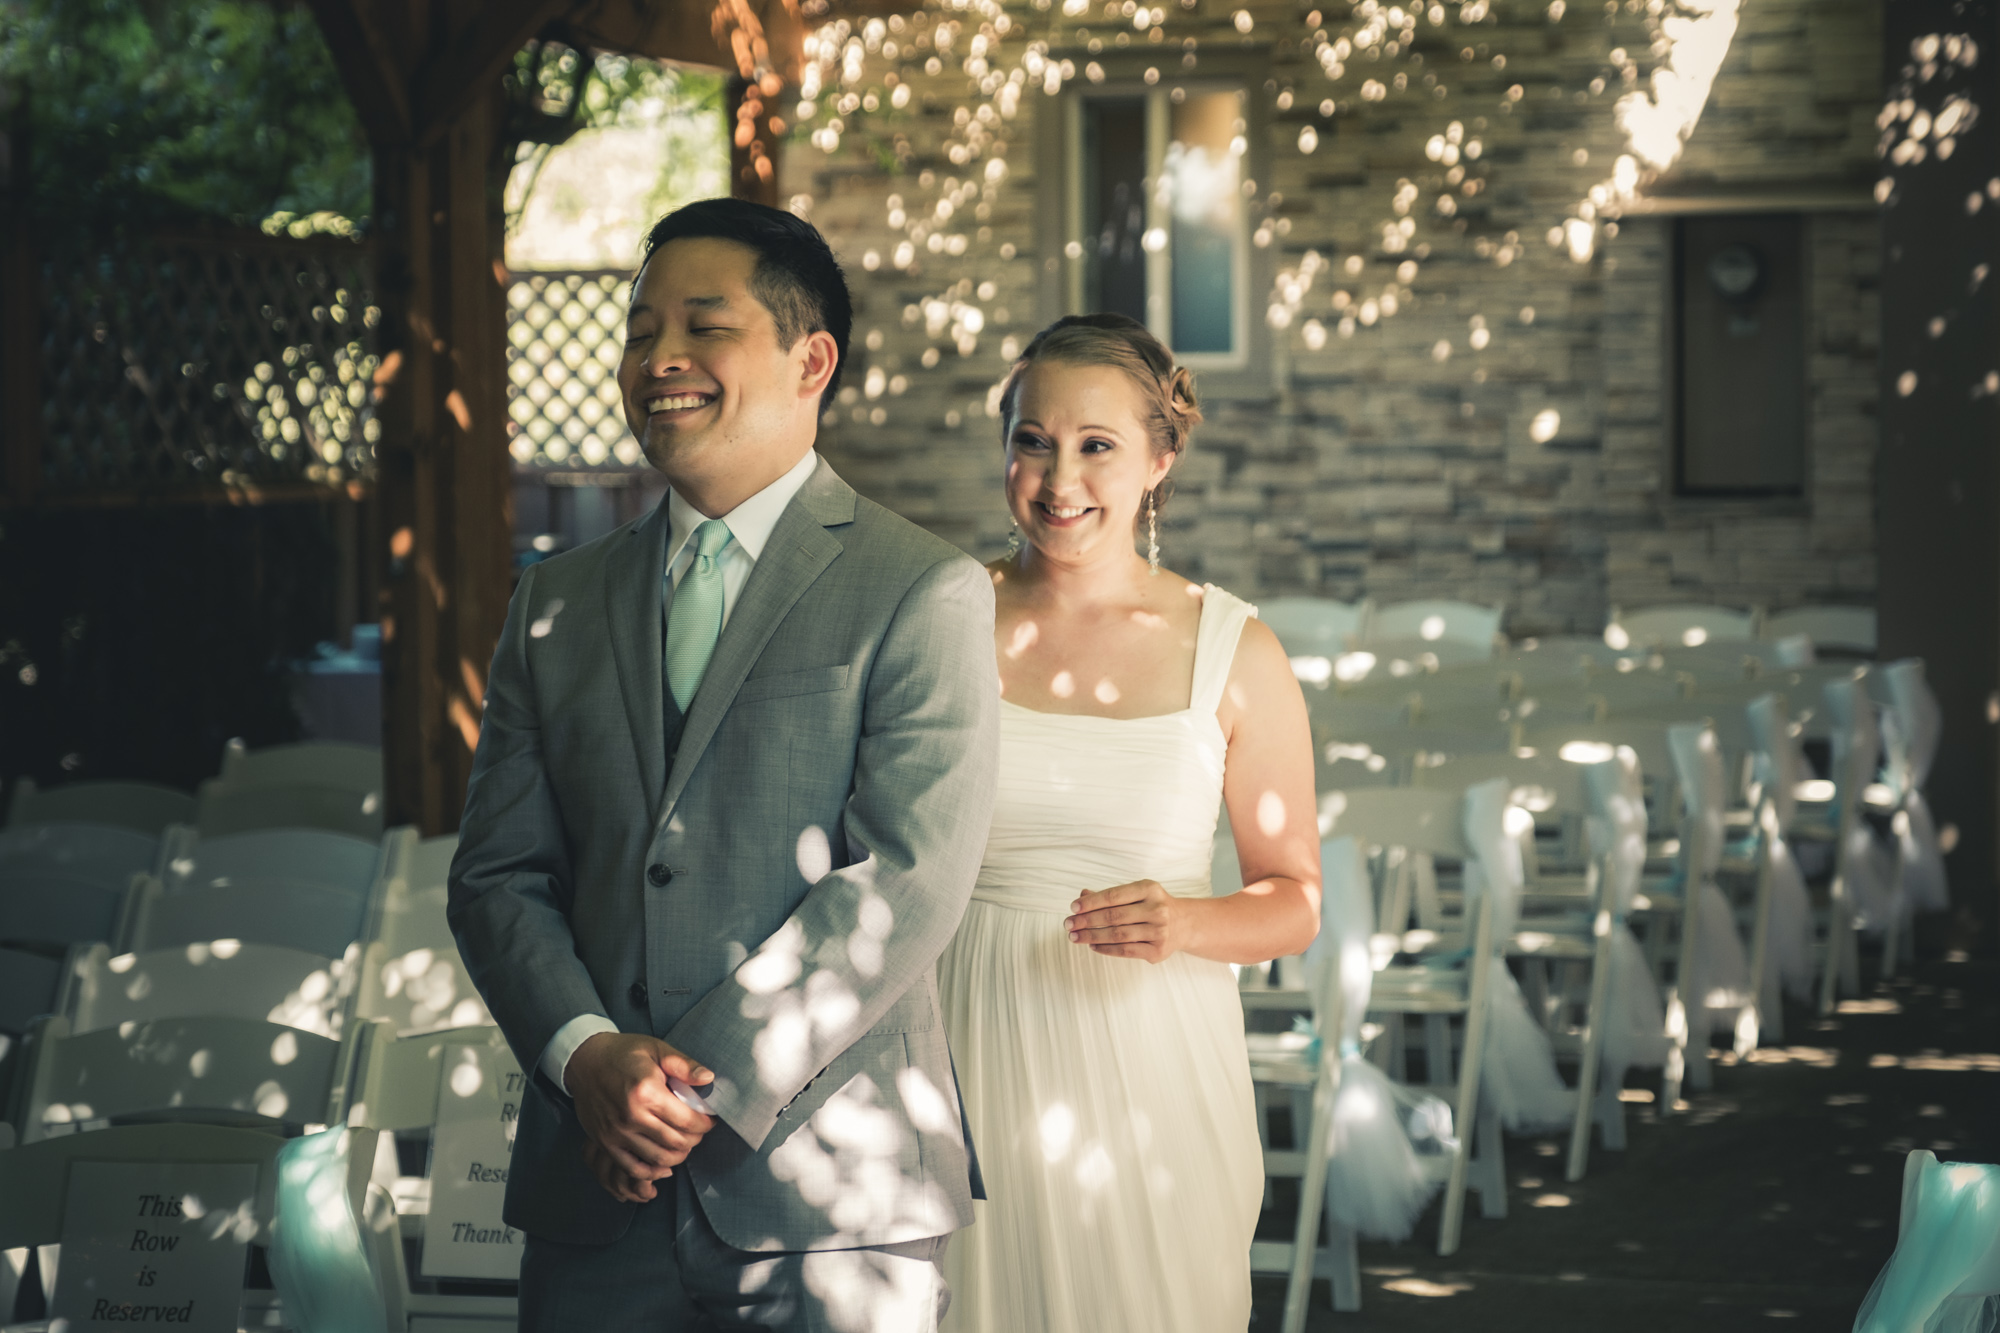 Adriane and Sho Wedding - Michael Sladek Photography.jpg